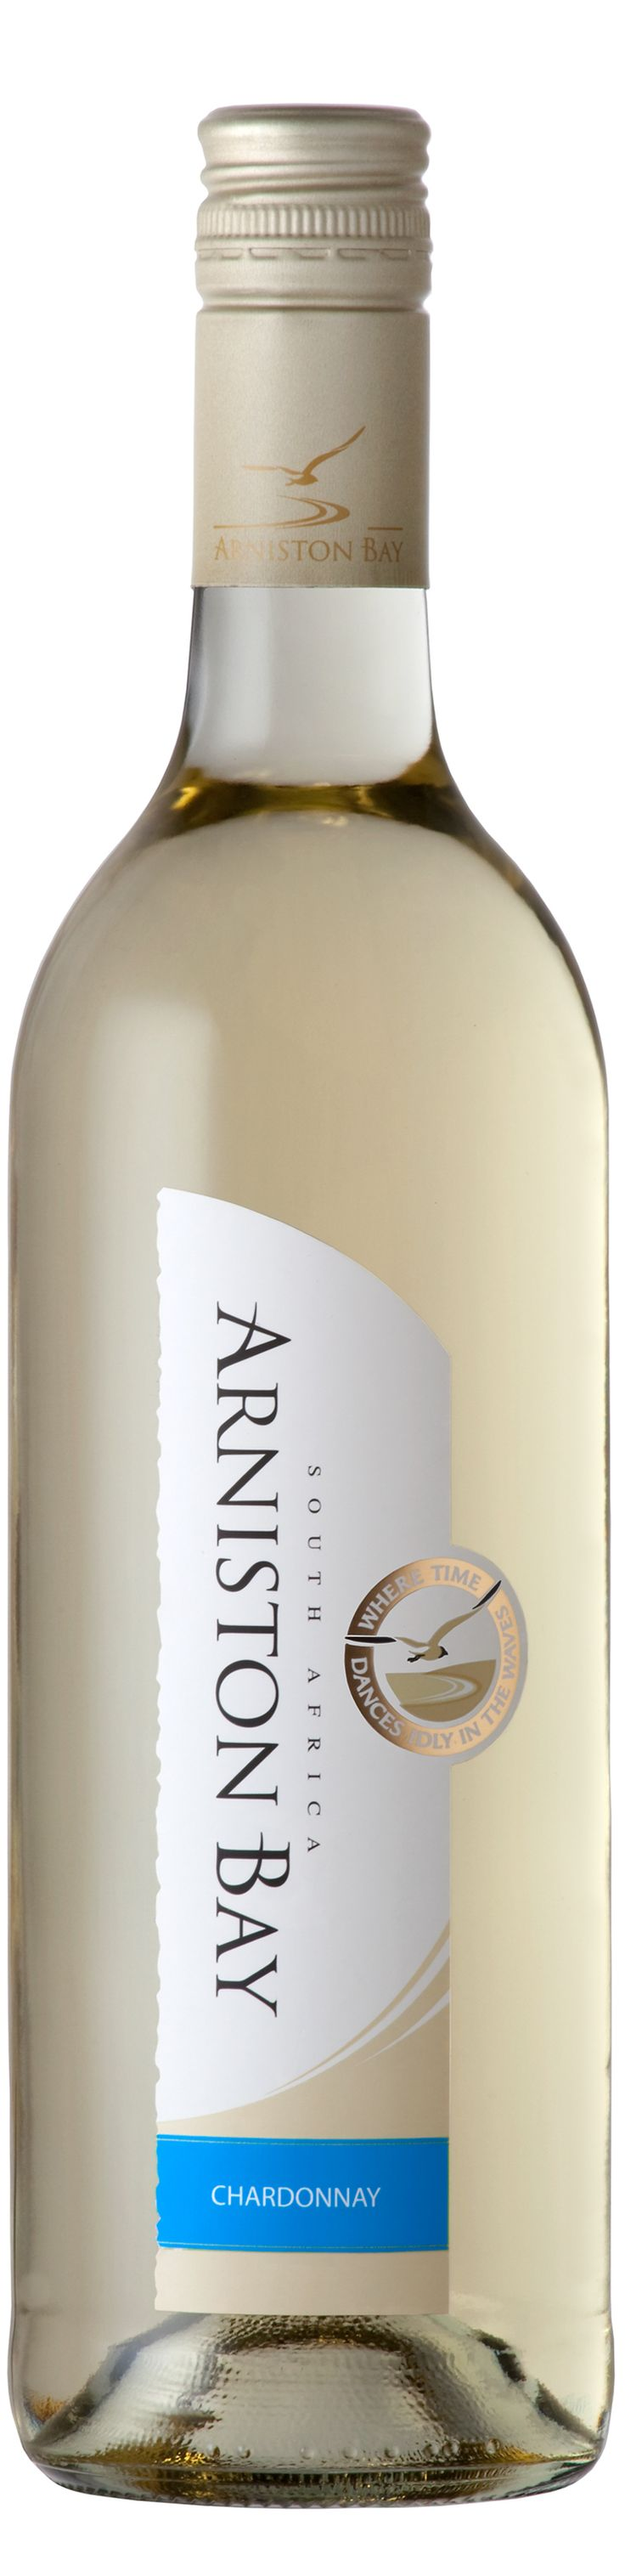 The most amazing value wine yet on Wine Wizard. 83 points and only R 35.00 http://winewizard.co.za/wine/chardonnay/white/arniston-bay-chardonnay/